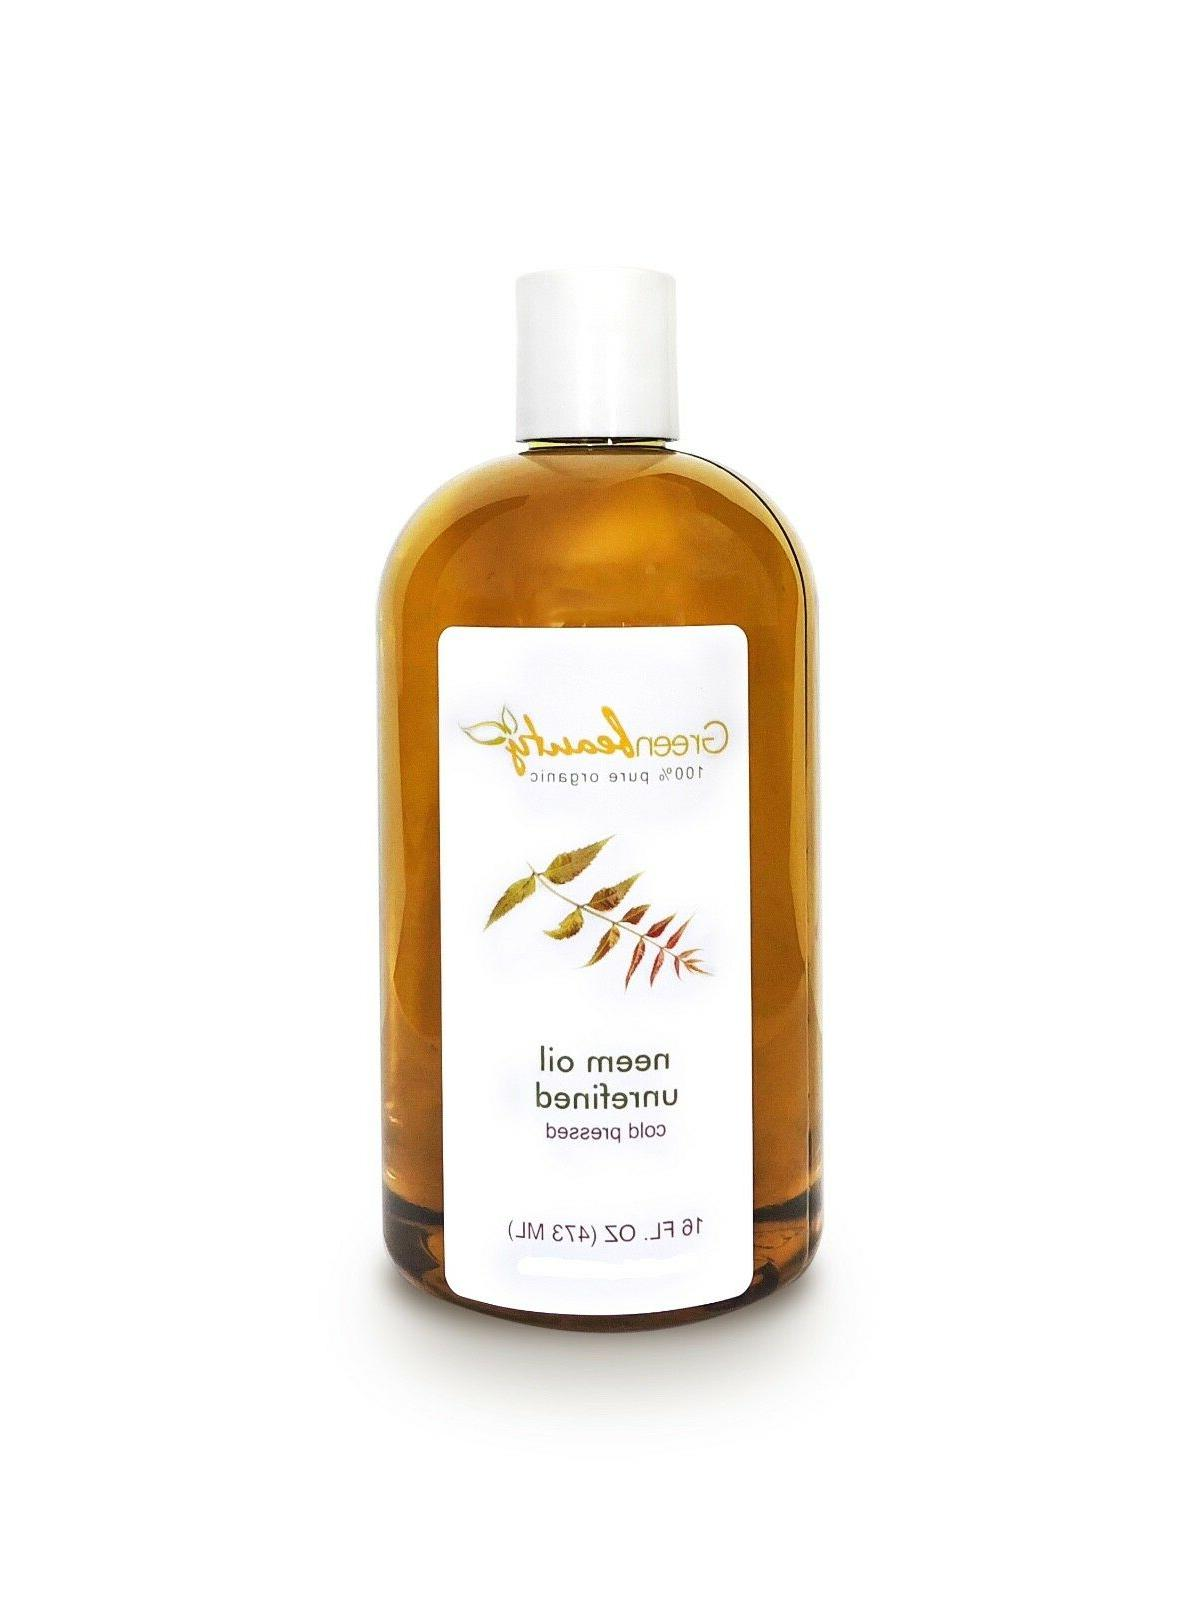 100% CARRIER OILS PRESSED REFINED